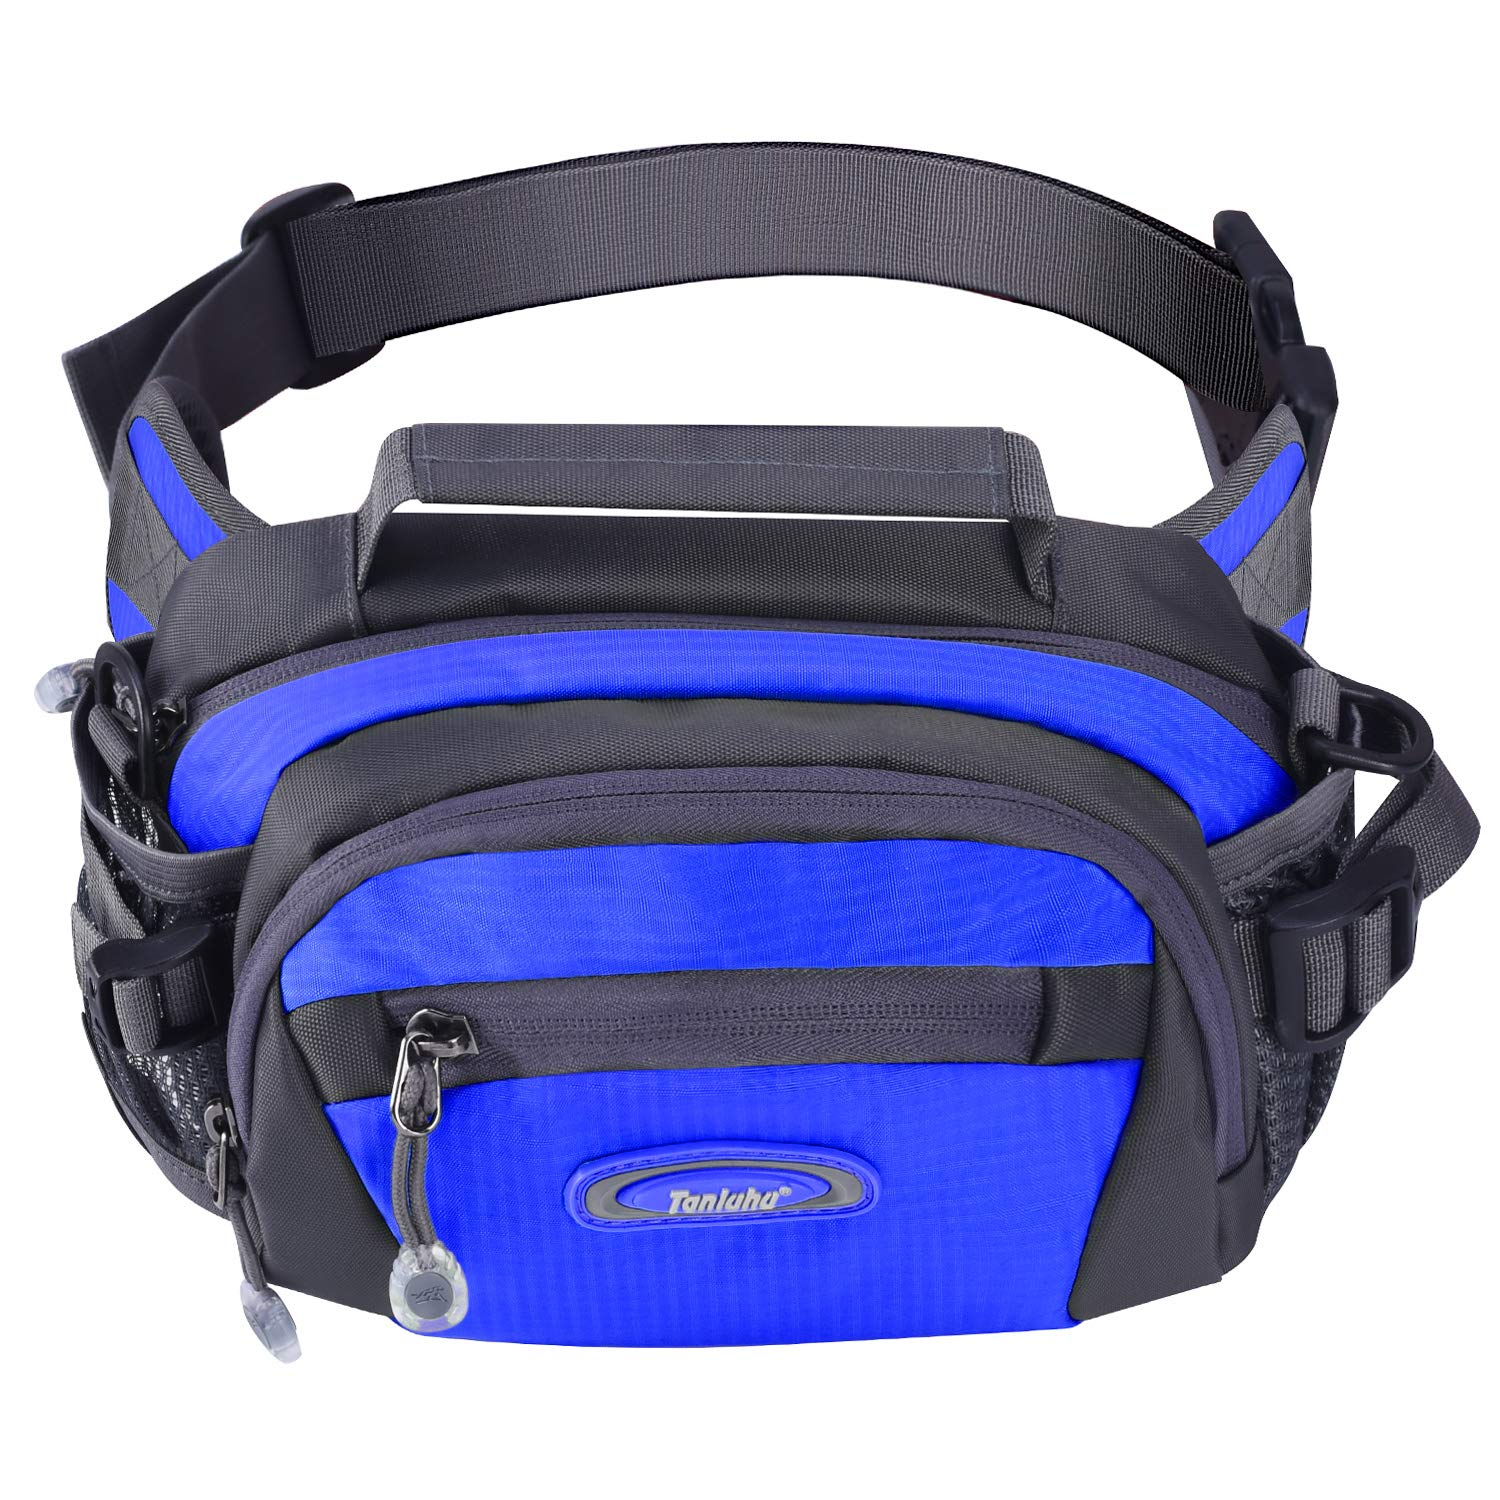 Y R Direct Waist Bag Fanny Pack Waist Pack with Adjustable Water Bottle Holder,Large Fanny Packs for iPhone 7 8 Plus X,Outdoor Sports Hiking Cycling Carrying,Men Women Gifts